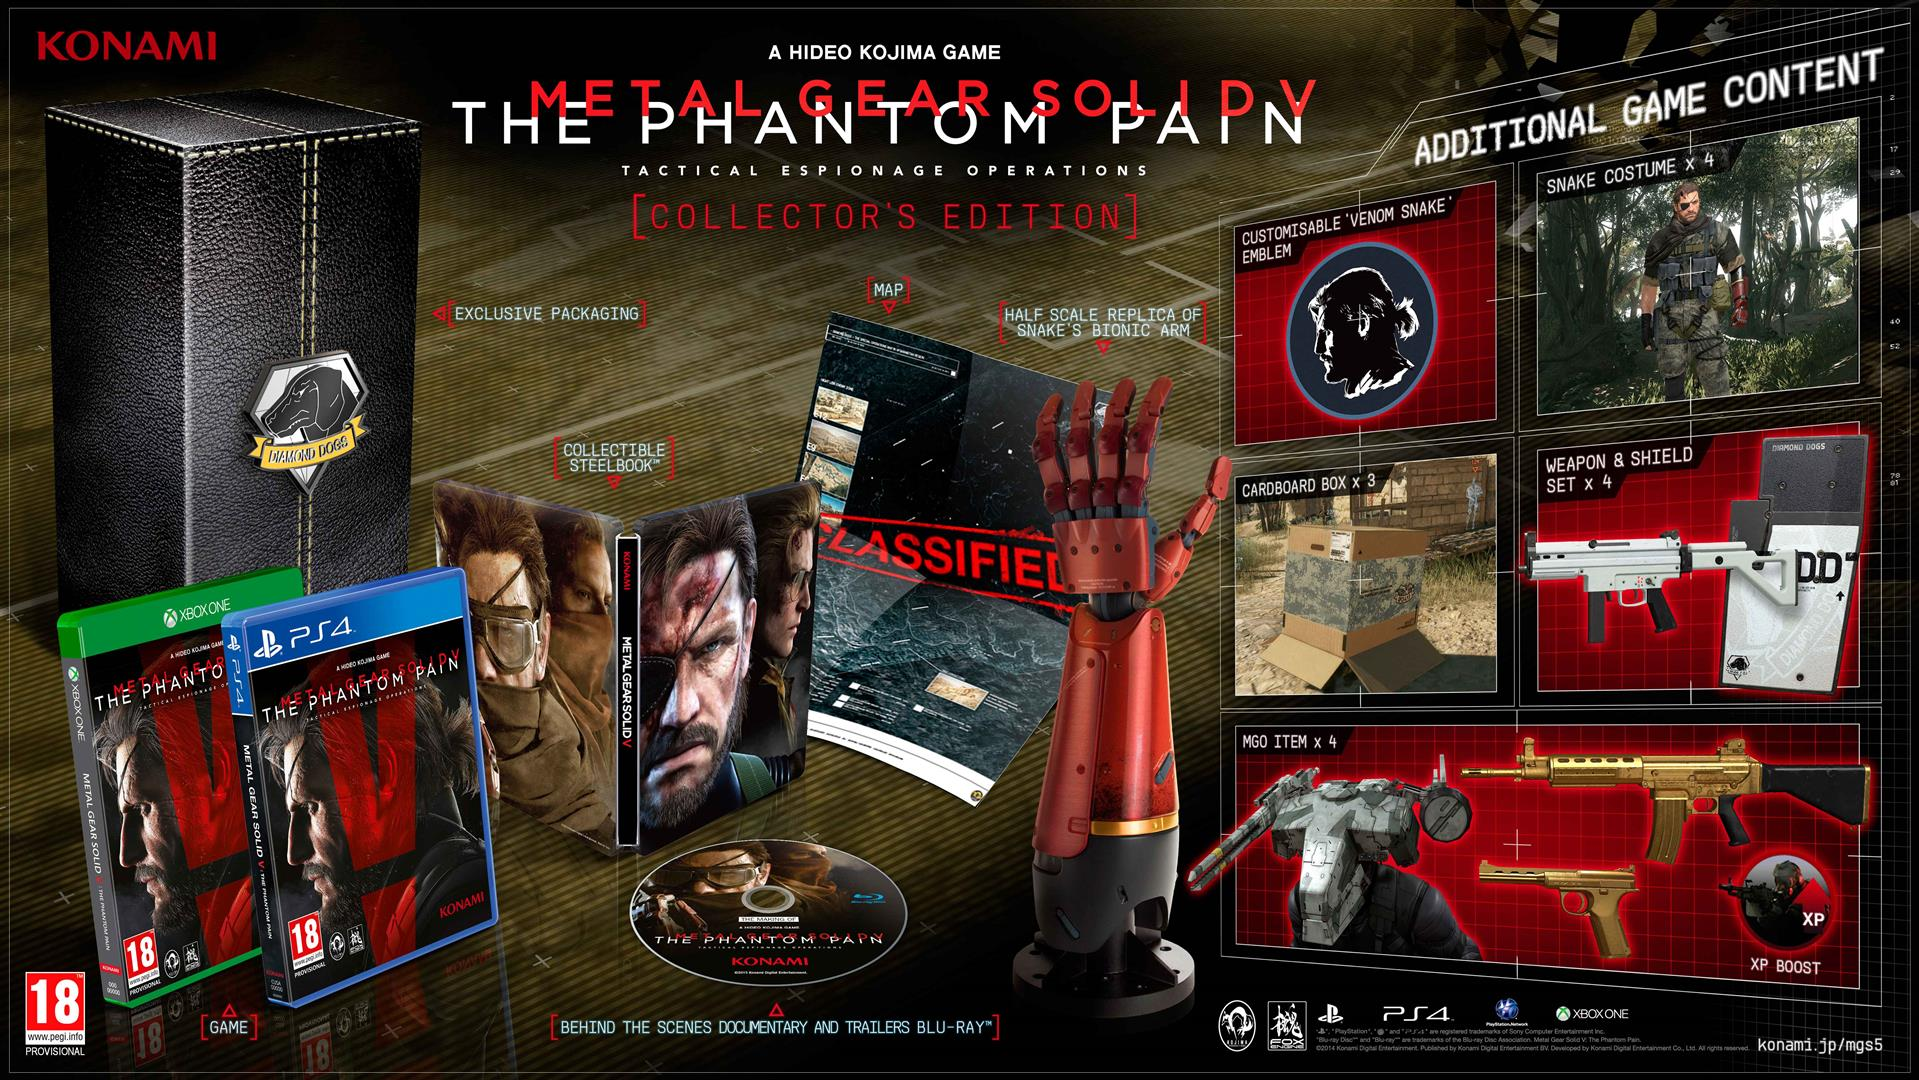 METAL GEAR SOLID 5: THE PHANTOM PAIN - Collectors Edition B_QiwyRWwAACaif